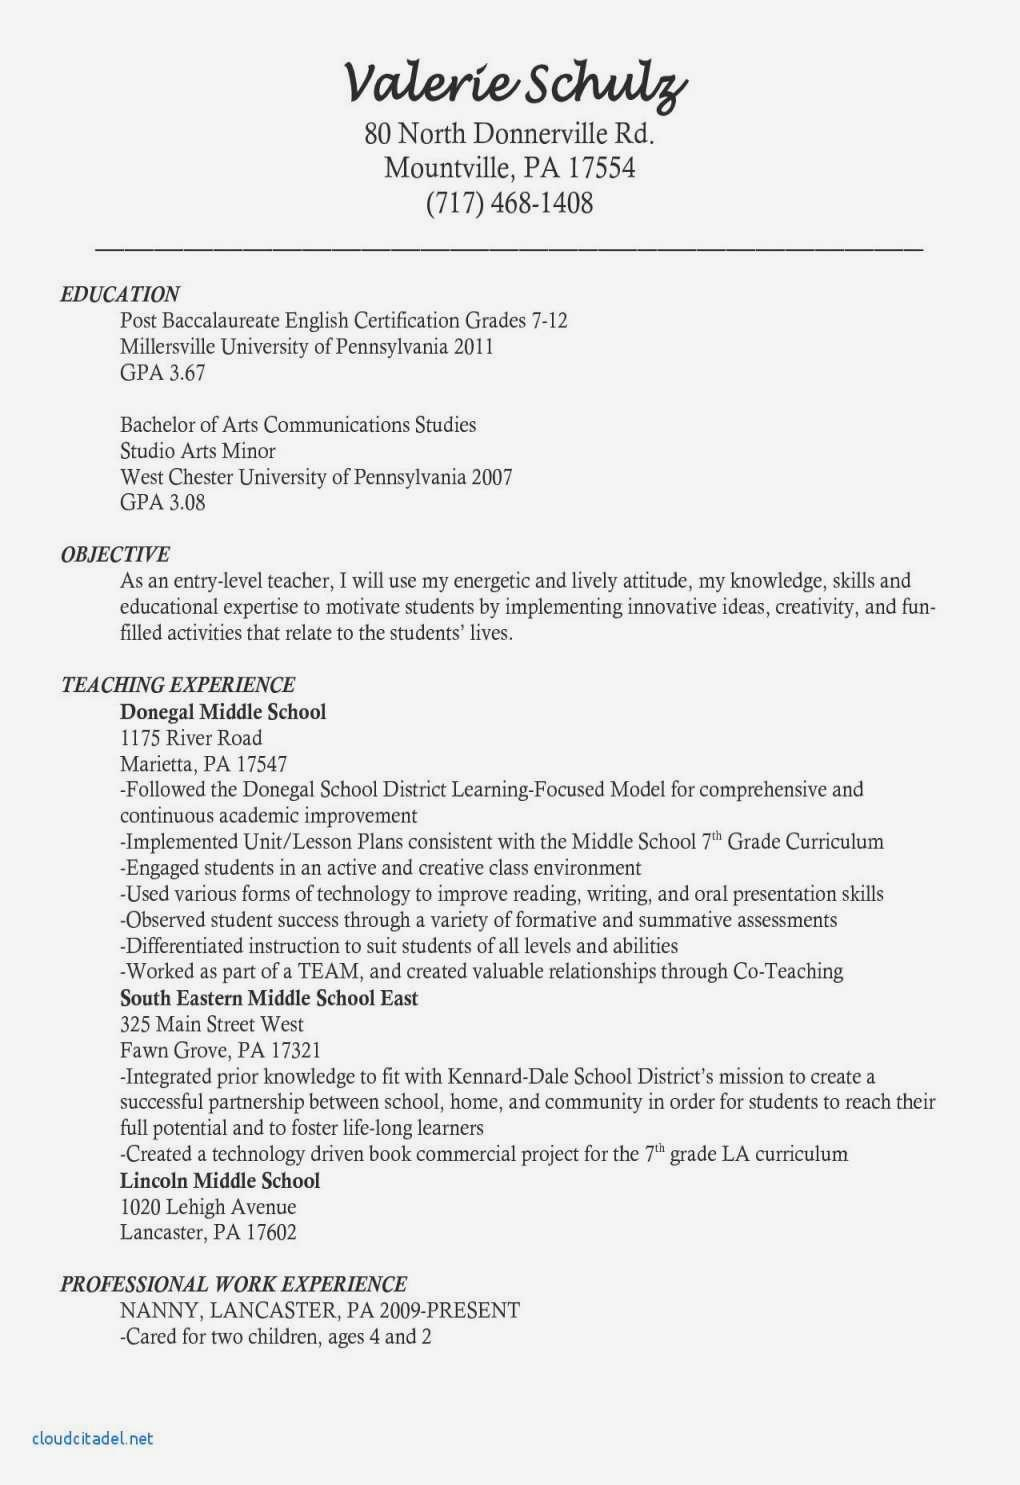 Cover Letter Teacher Templates Free